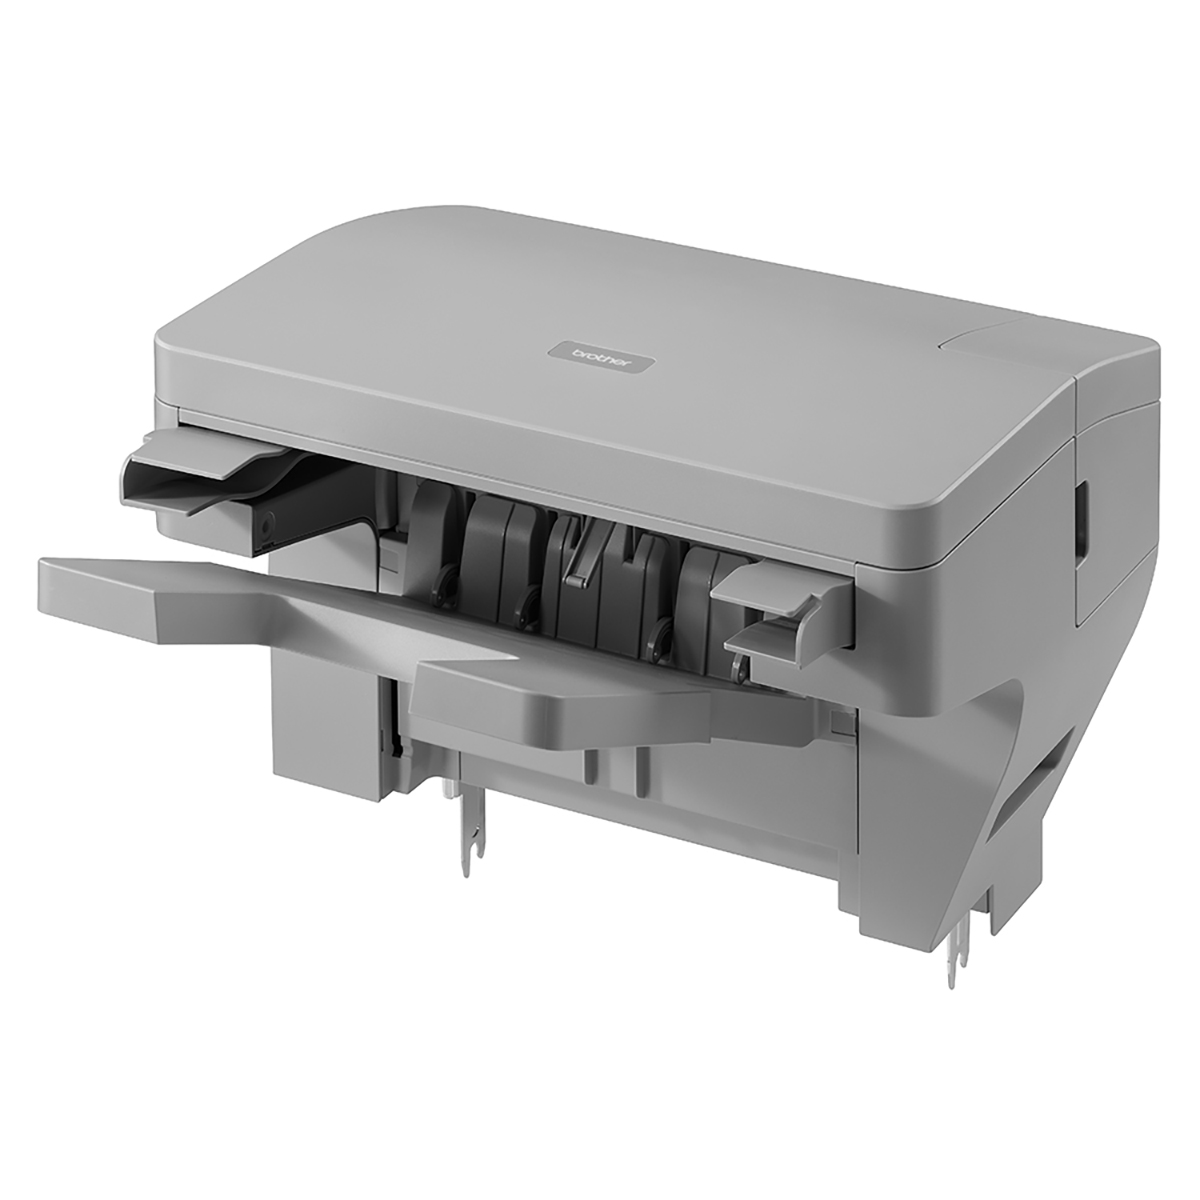 Brother SF-4000 Staple Finisher